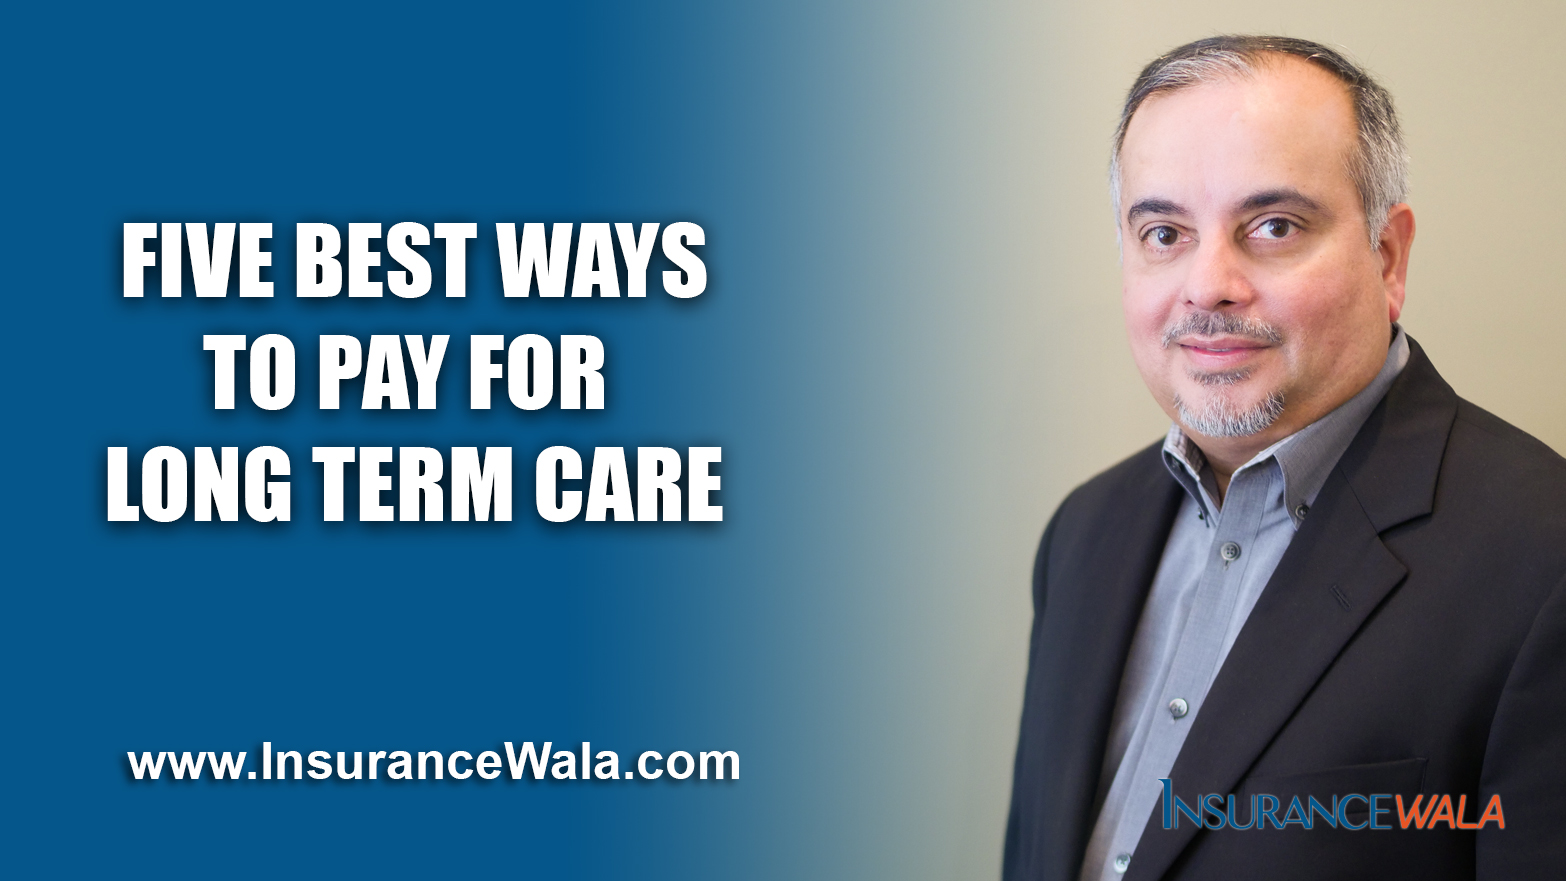 Five Best Ways to Pay for Long Term Care Costs